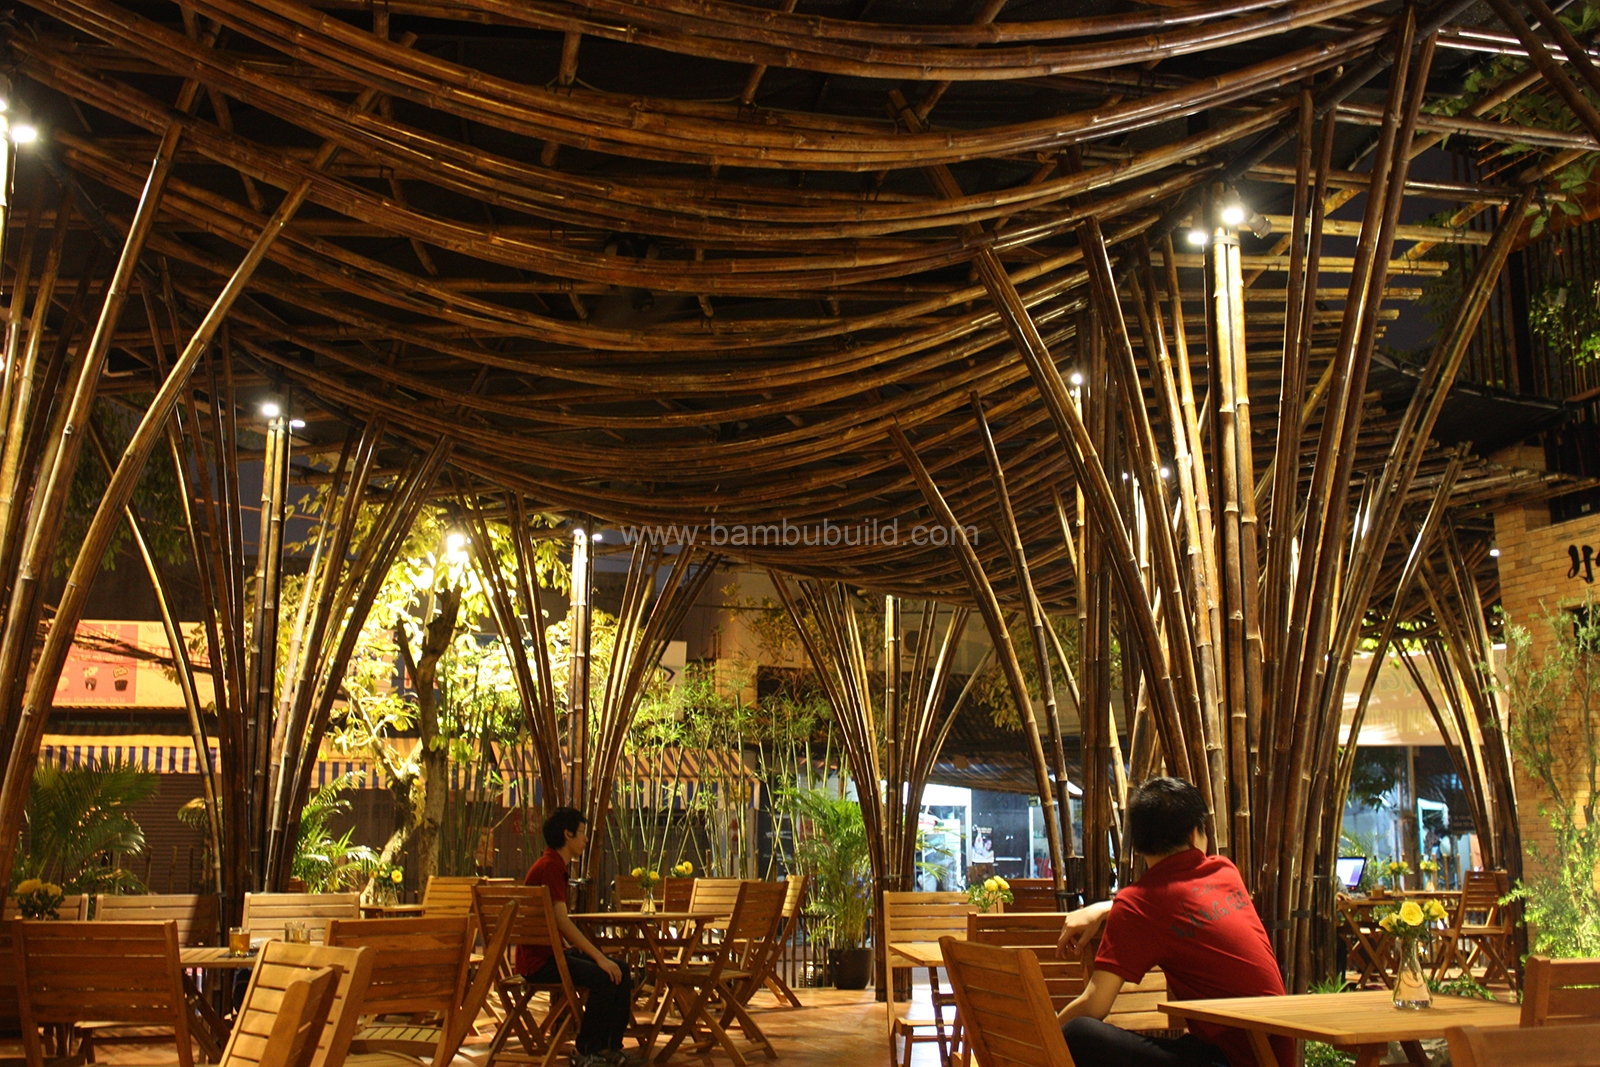 bamboo decoration - bamboo architecture